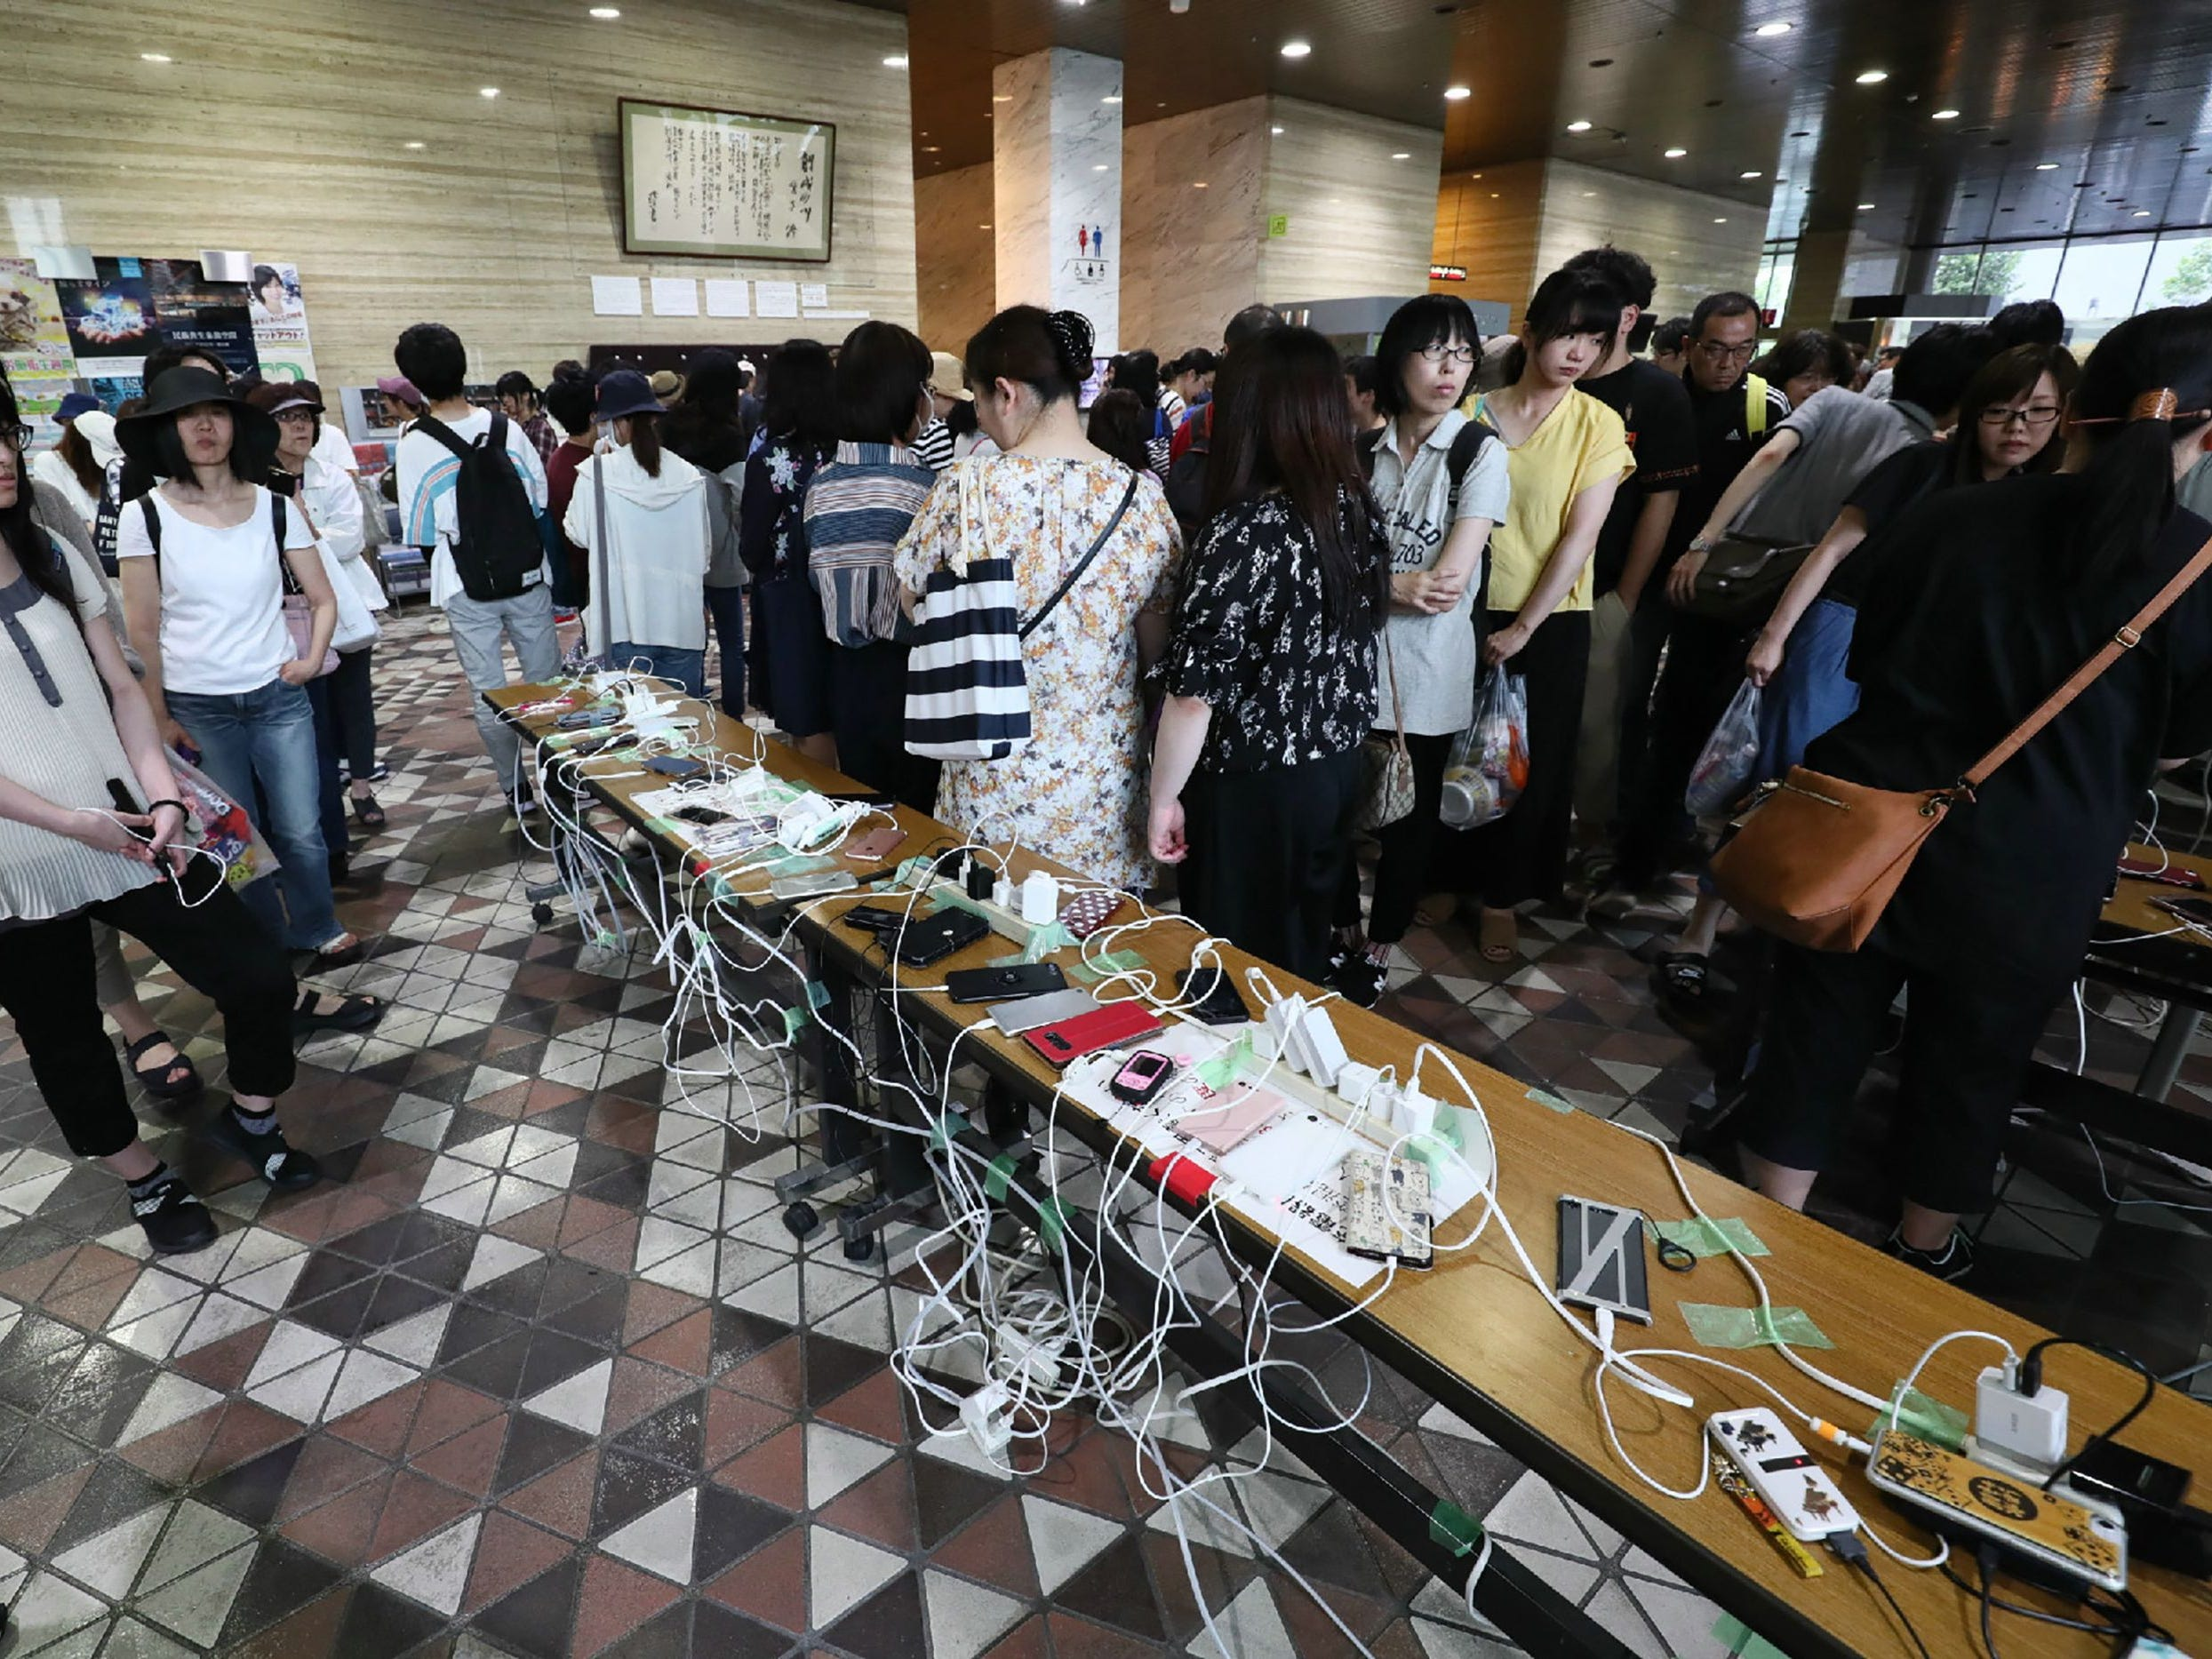 Residents charge their mobile phones at the Hokkaido prefectural headquarters in Sapporo, Hokkaido prefecture on Sept. 6, 2018, due to a blackout after an earthquake hit the northern Japanese island of Hokkaido.